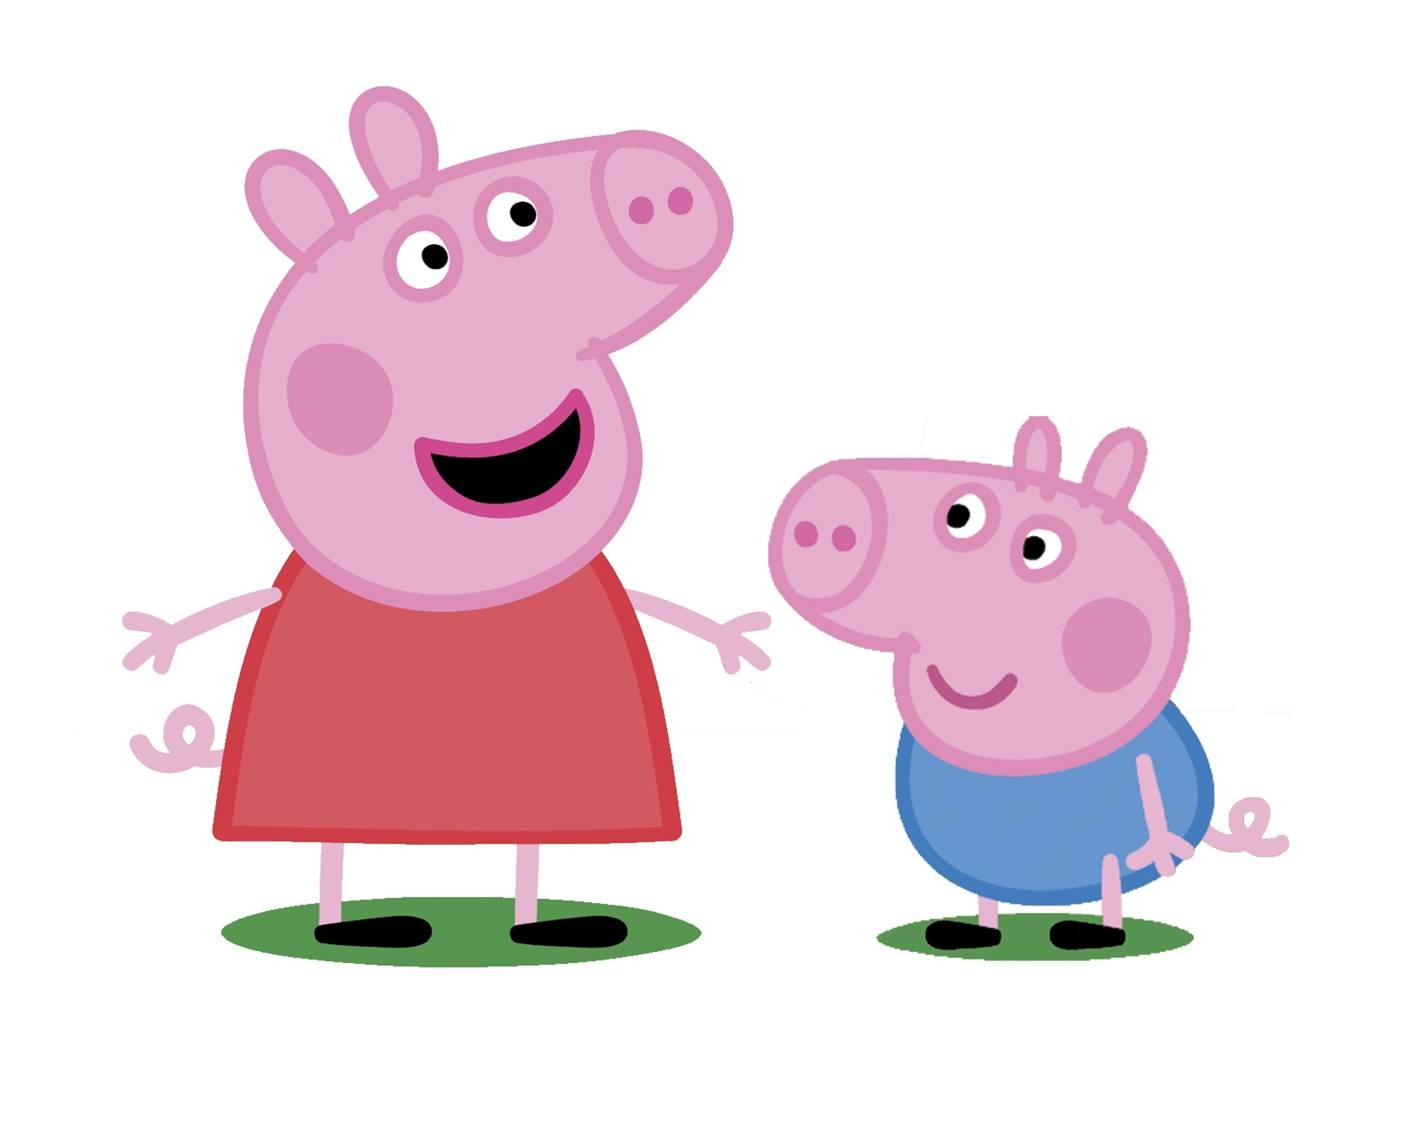 Disney HD Wallpapers Peppa Pig HD Wallpapers 1407x1126